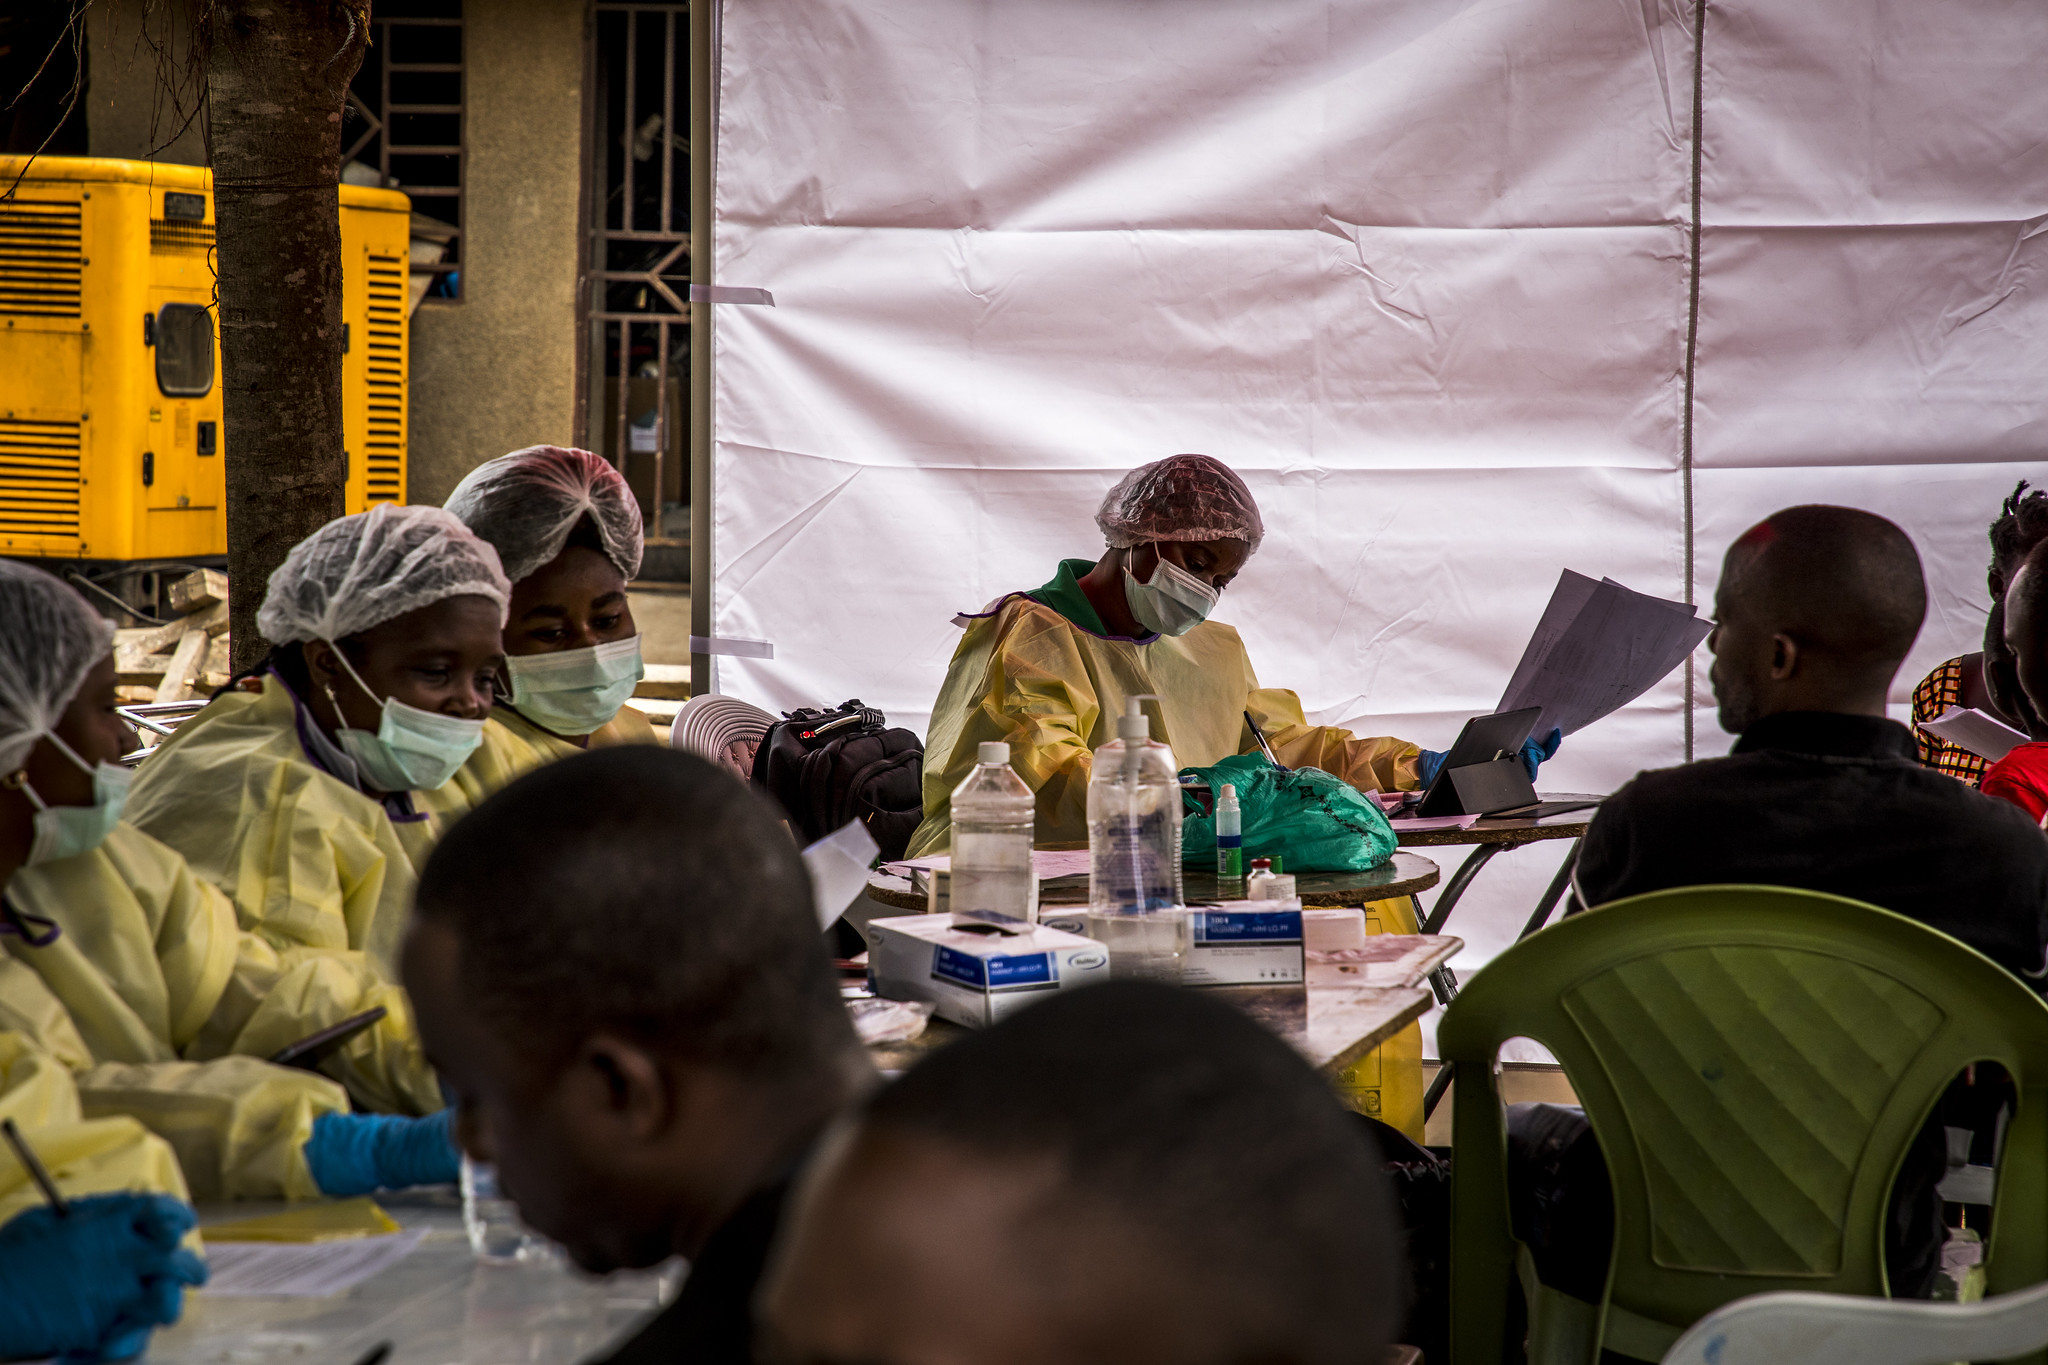 African health systems brace for wave of COVID-19 cases